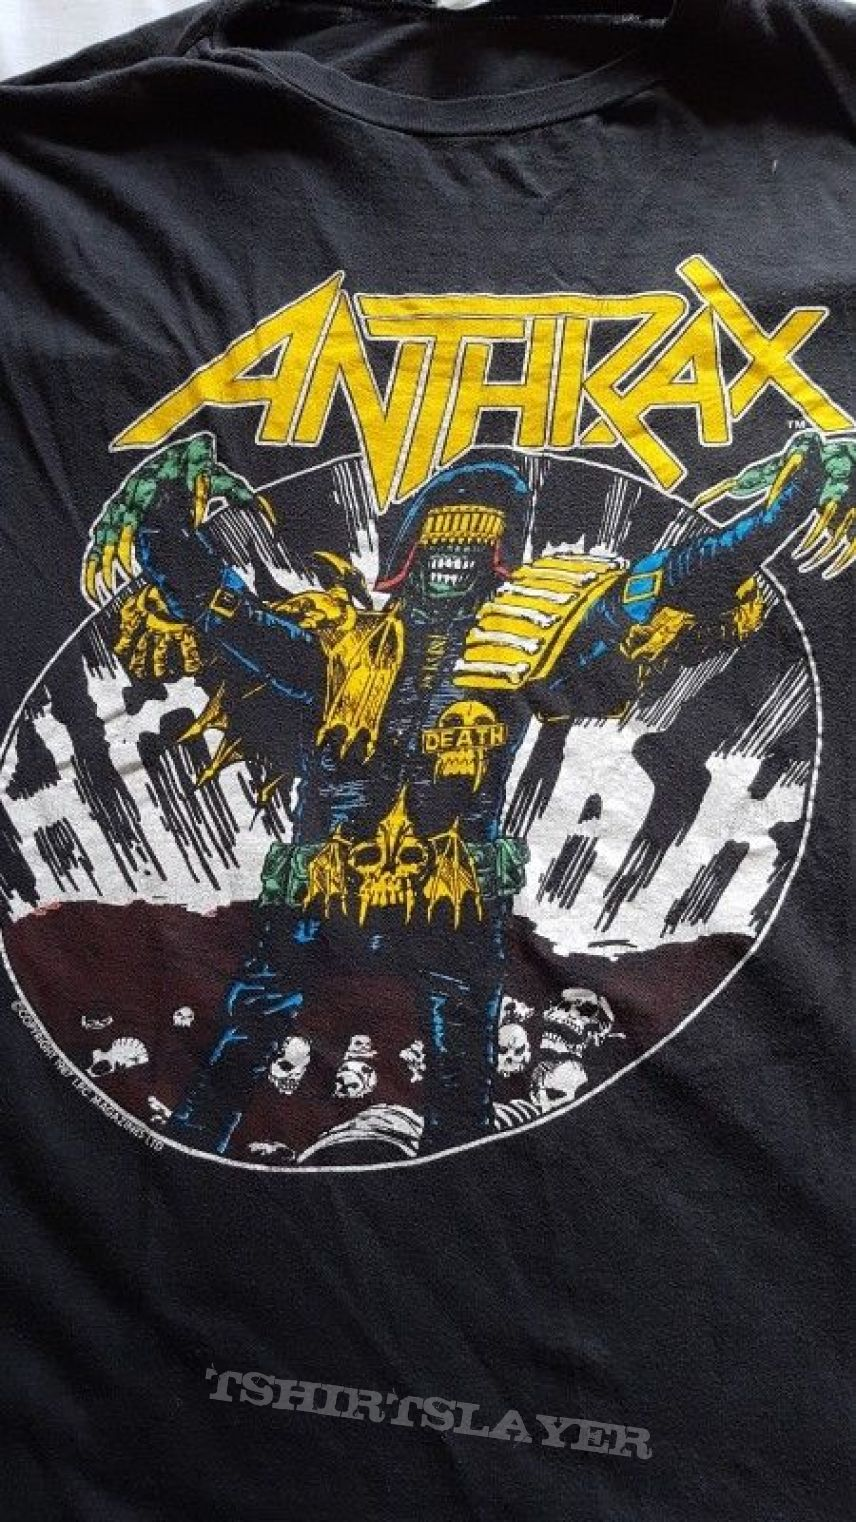 Anthrax - Among The Living Phase 2